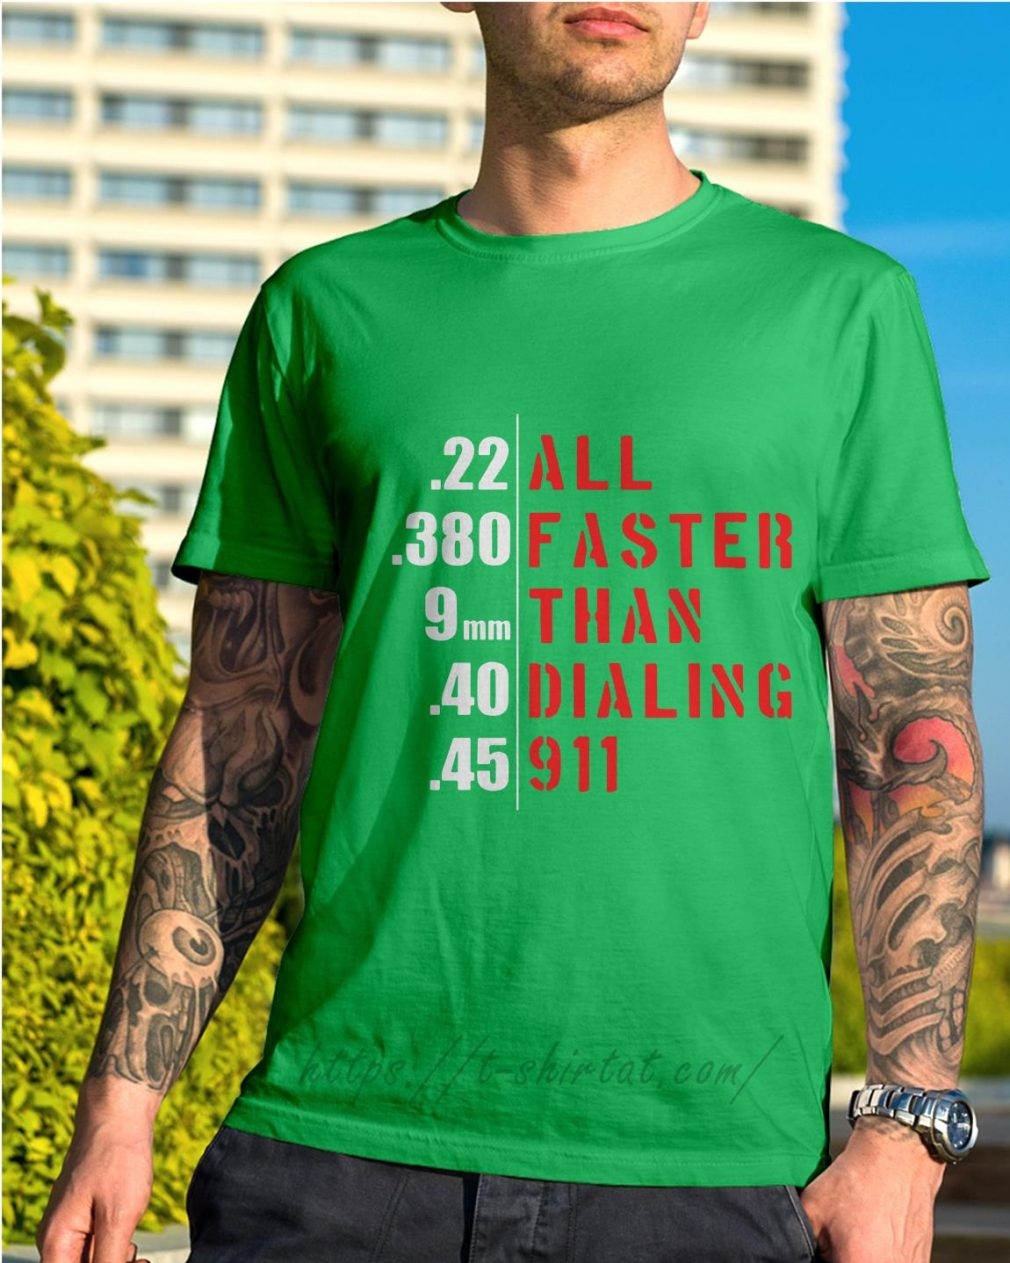 All faster than dialing 911 Shirt green